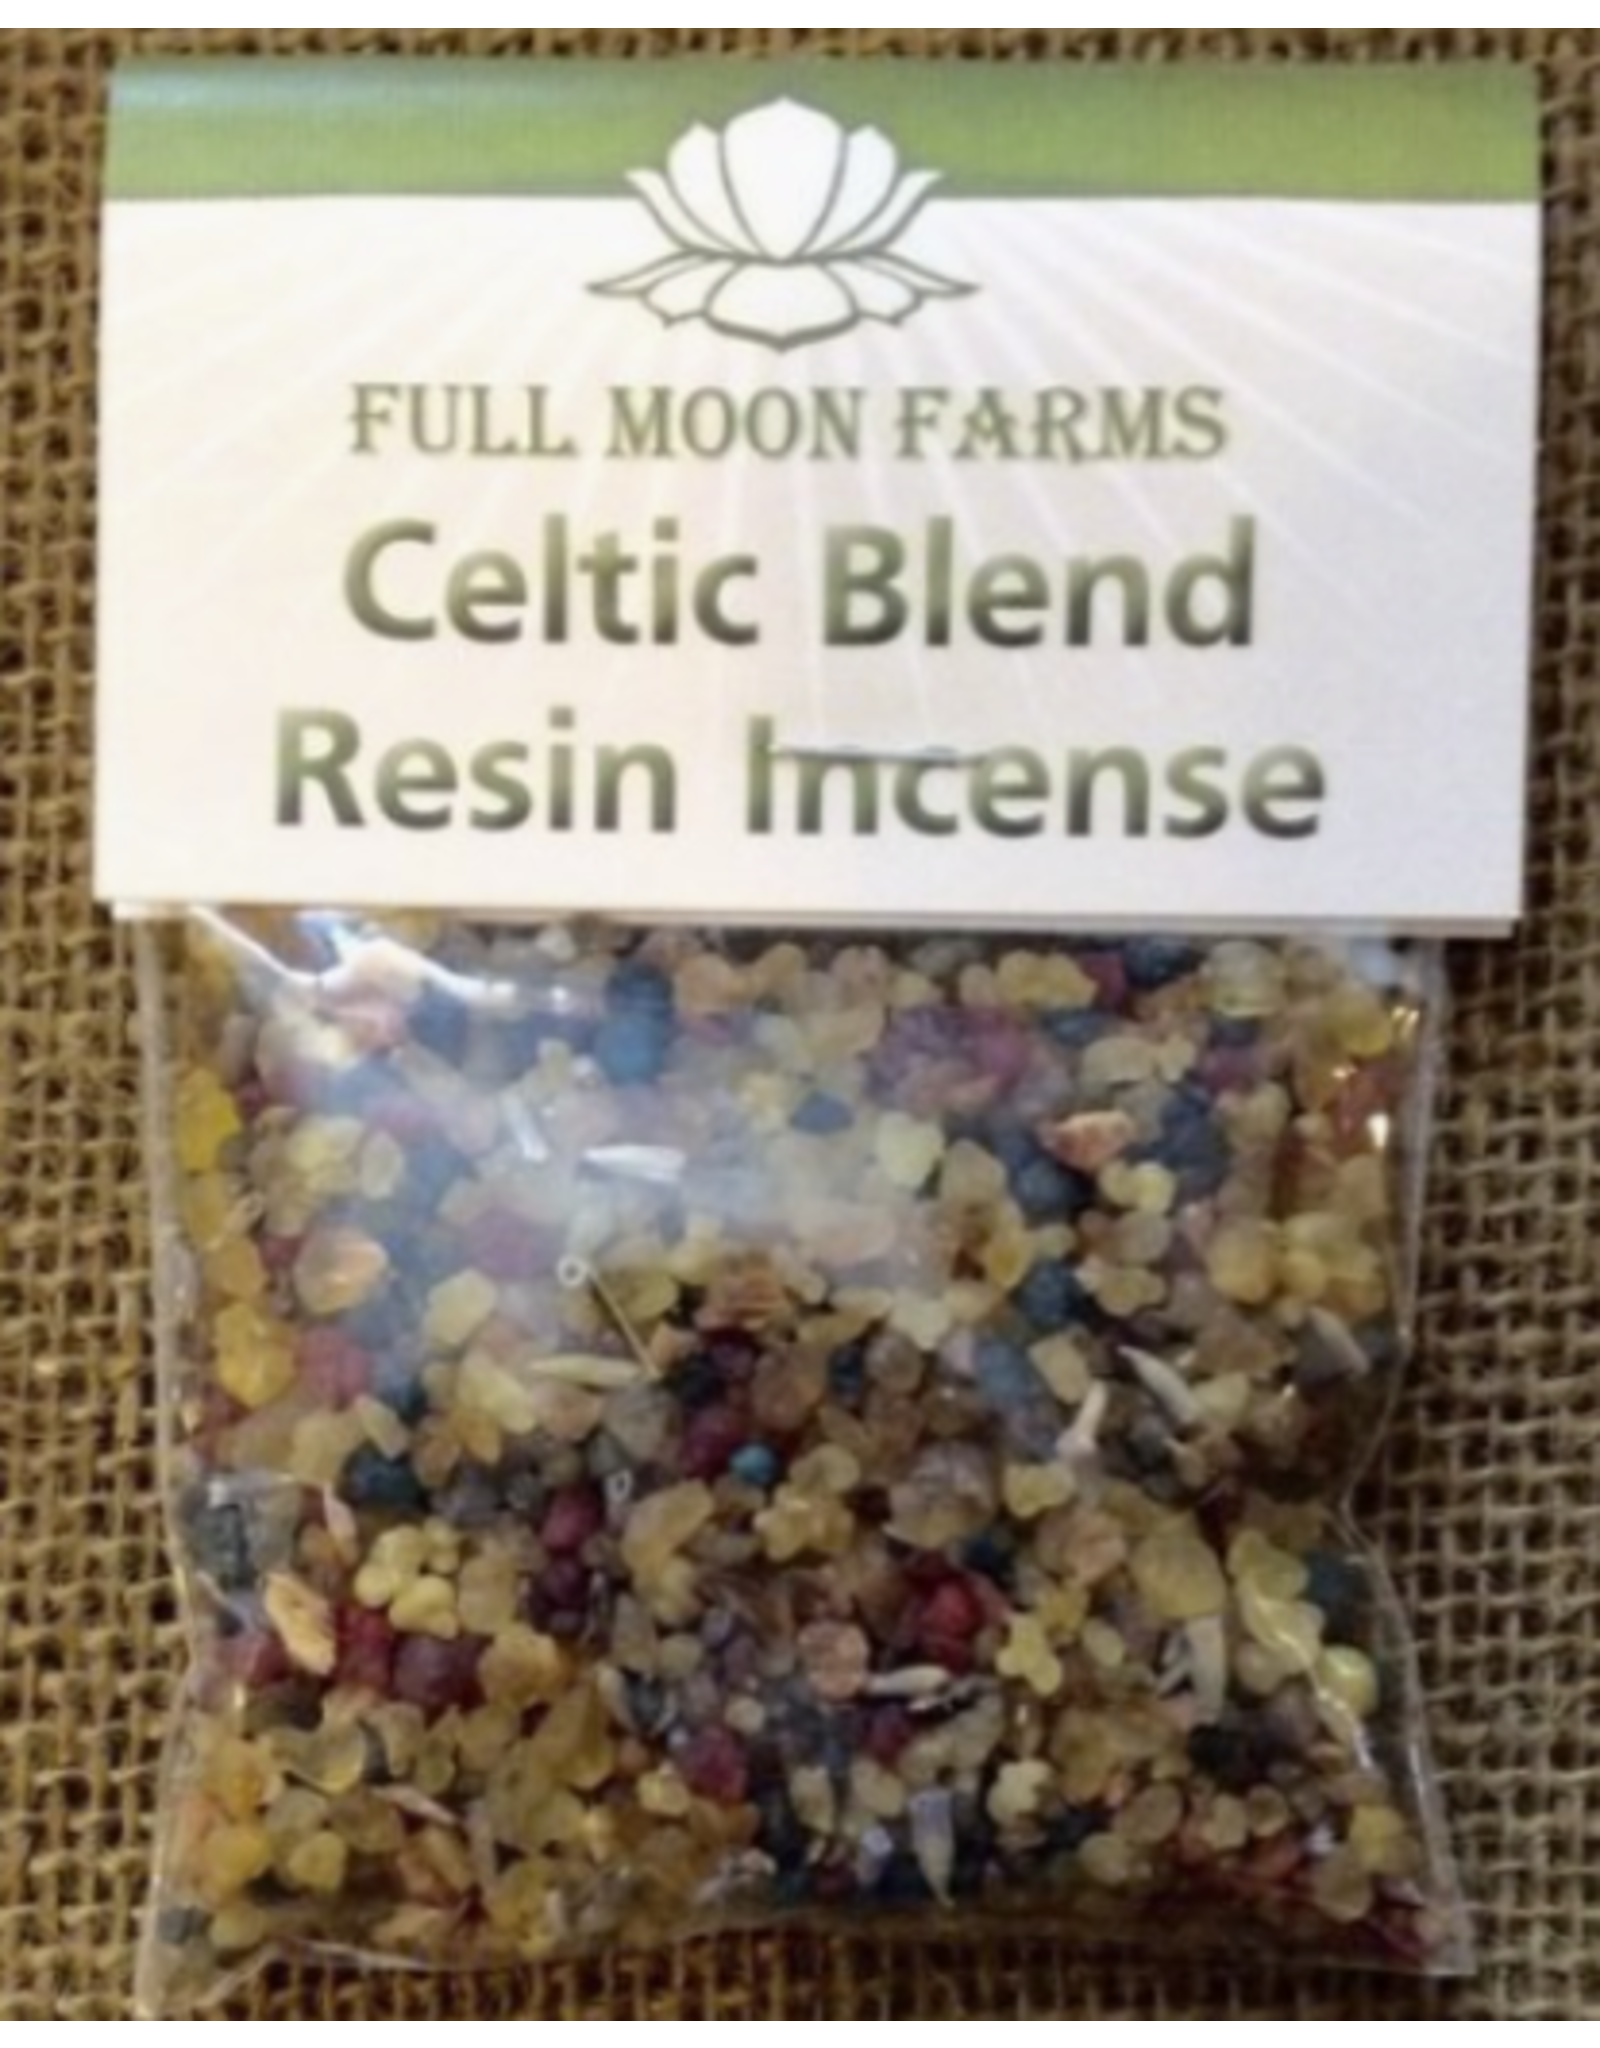 Celtic Blend Resin Incense 1oz